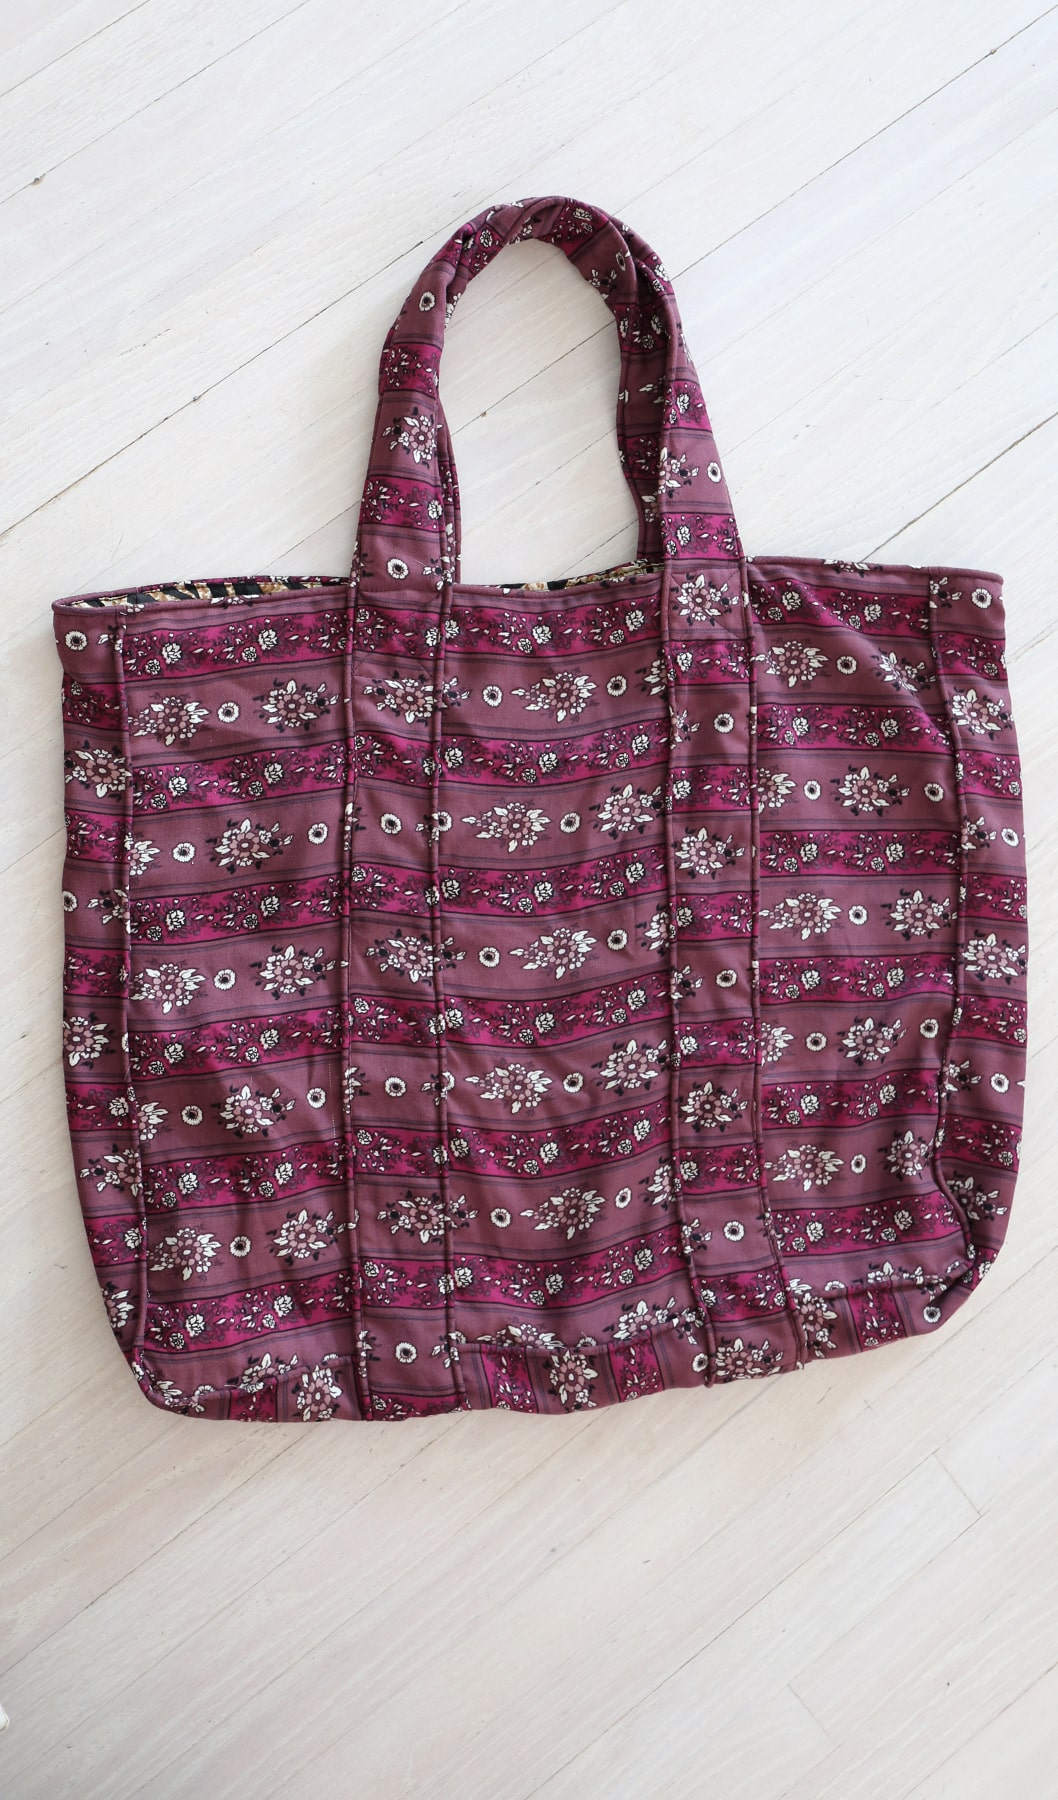 NR Tote - all prints